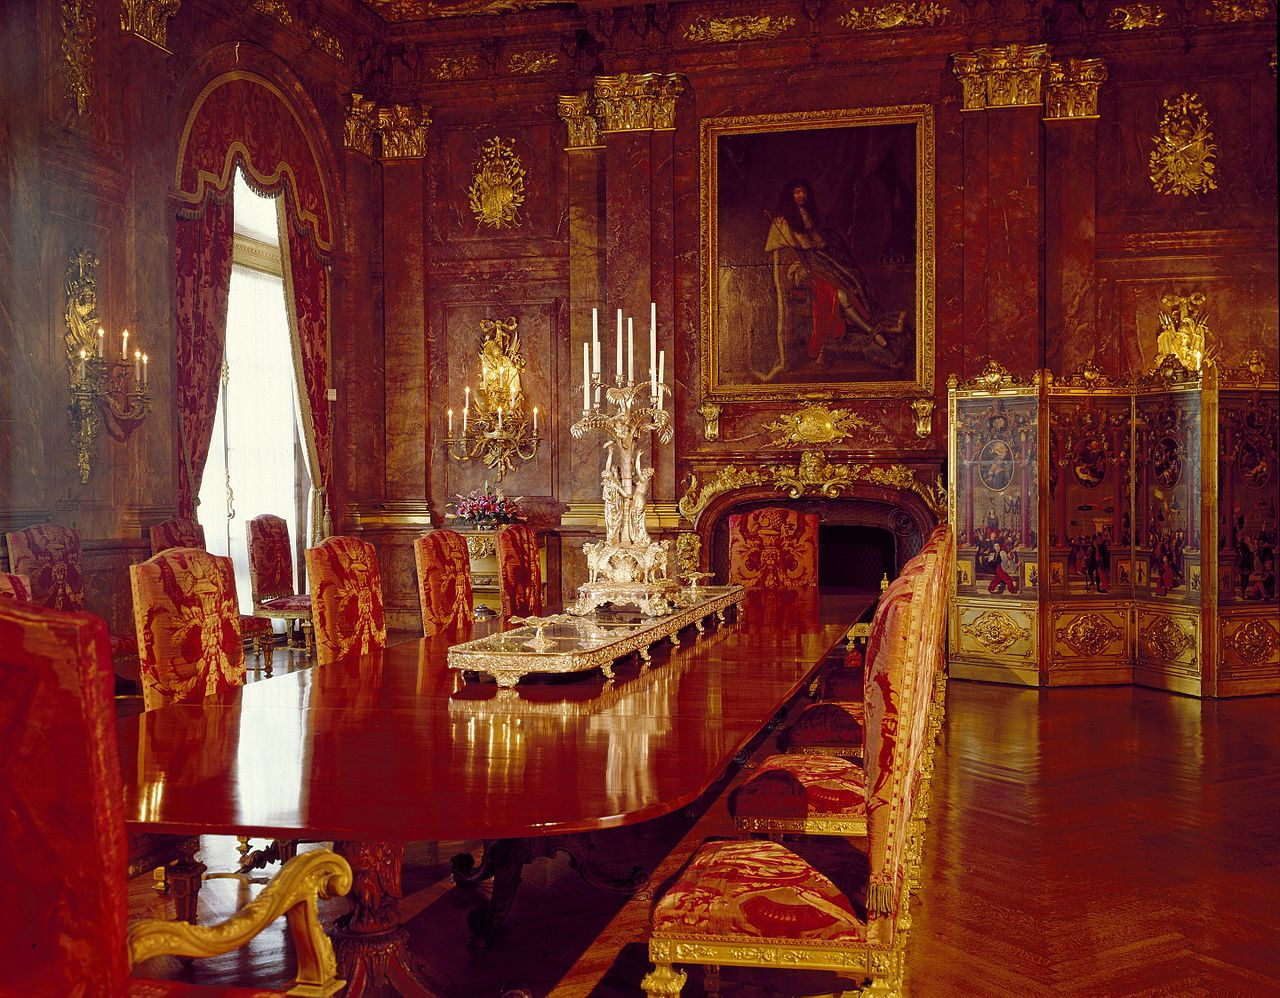 FileMarble House in Newport Dining Room 01jpg  : 1280px MarbleHouseinNewportDiningRoom01 from commons.wikimedia.org size 1280 x 998 jpeg 305kB